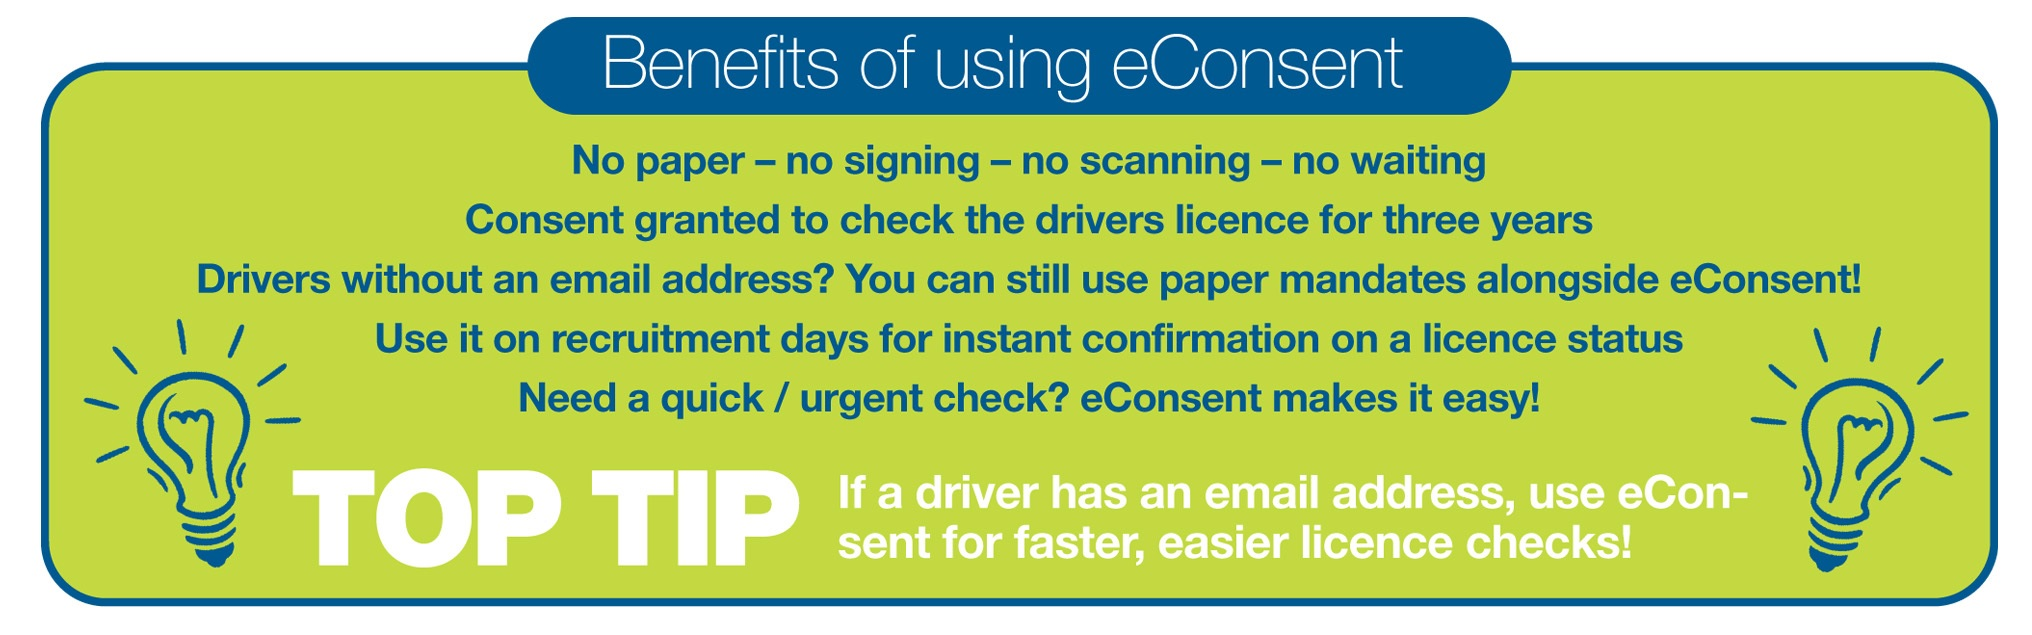 eConsent Benefits Image